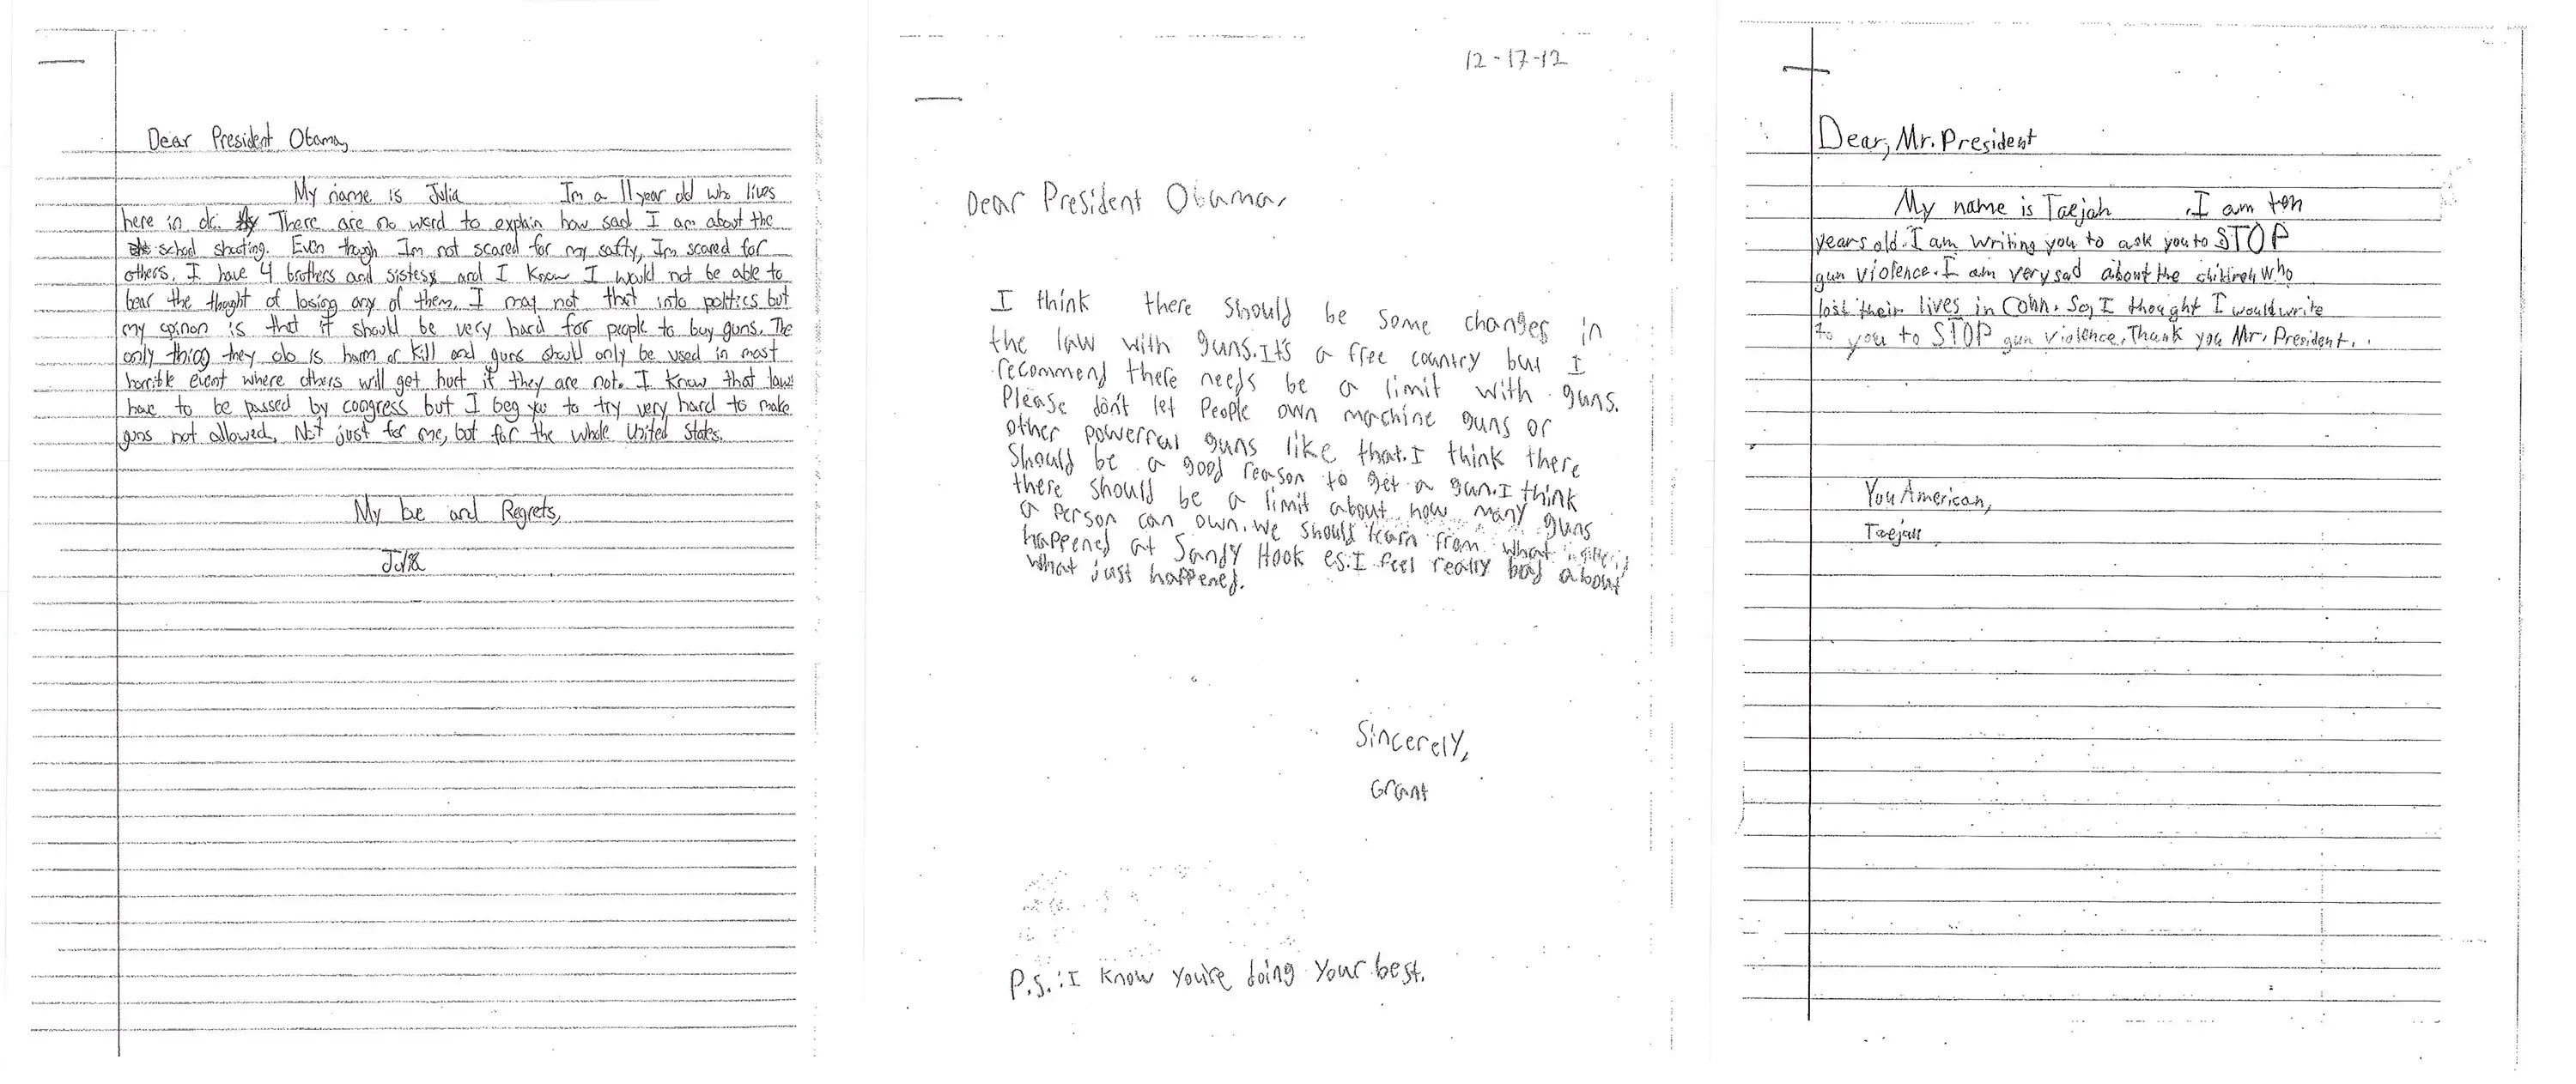 Here Are The Letters Kids Wrote To Obama Asking For New